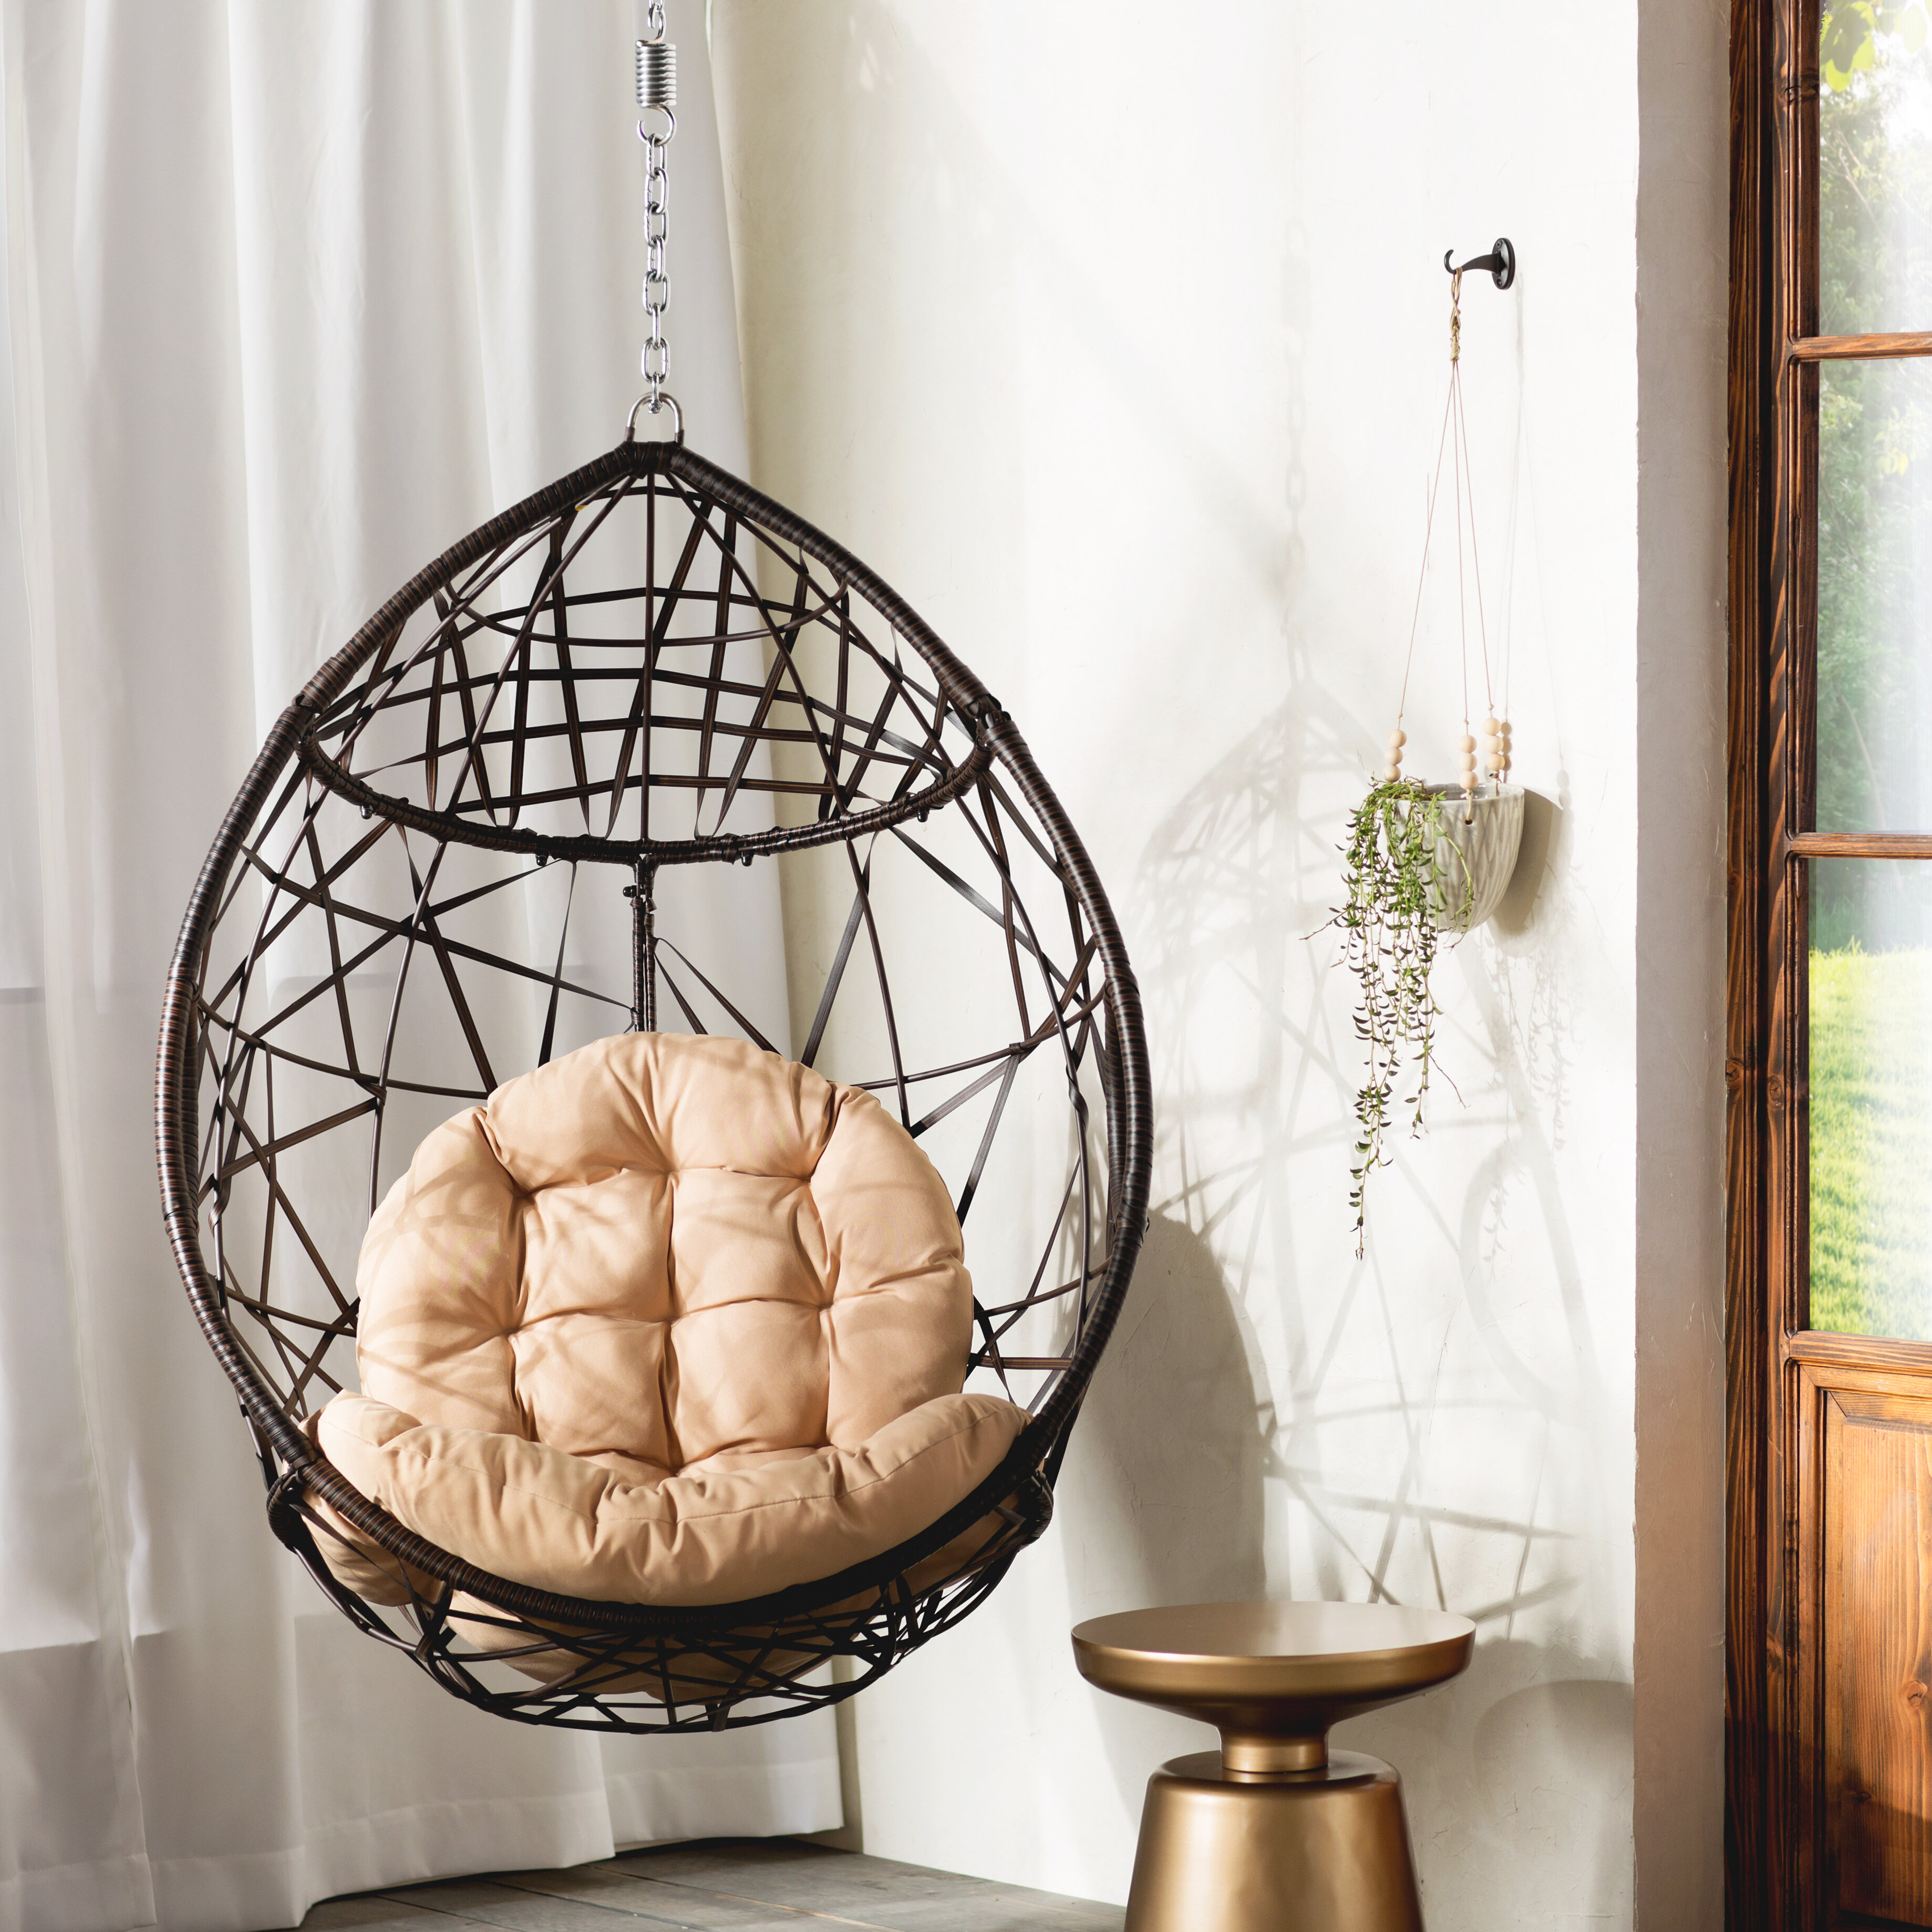 Mistana Destiny Tear Drop Swing Chair With Stand Reviews